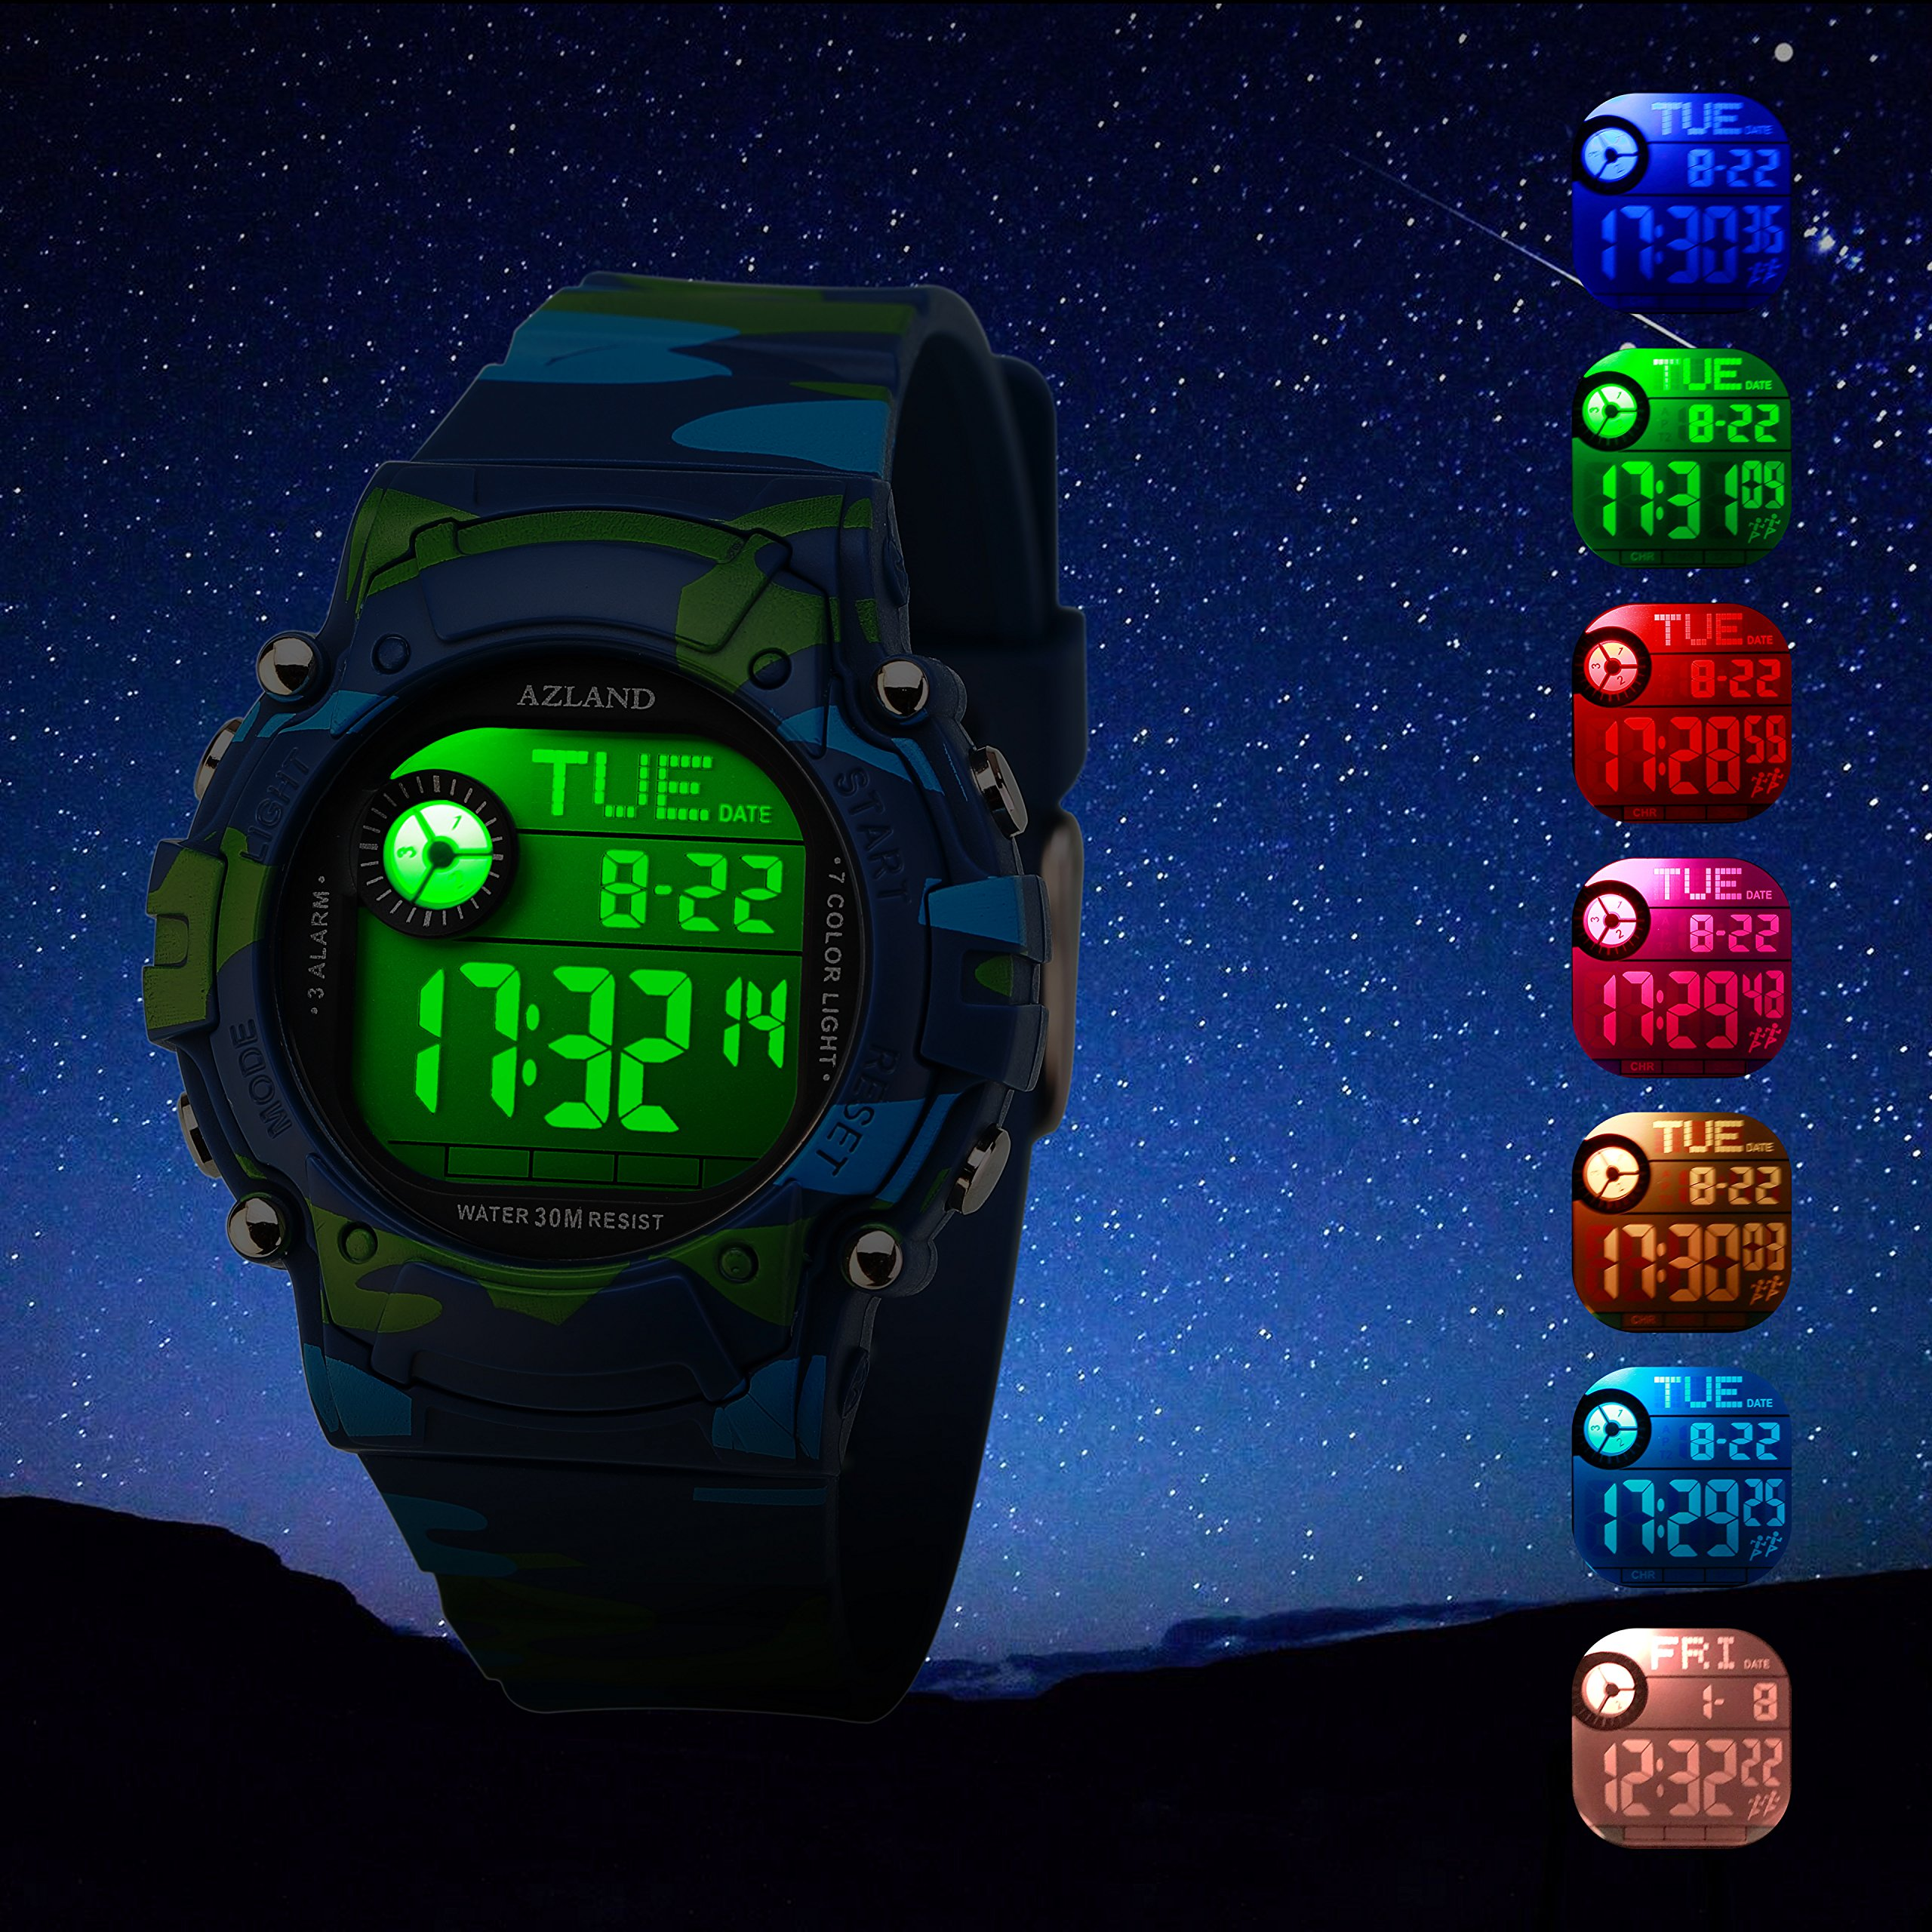 AZLAND 7 Colors Flashing, Multiple Alarms Reminder Sports Kids Wristwatch Waterproof Boys Girls Digital Watches Camo, for Age 4-12 by AZLAND (Image #2)